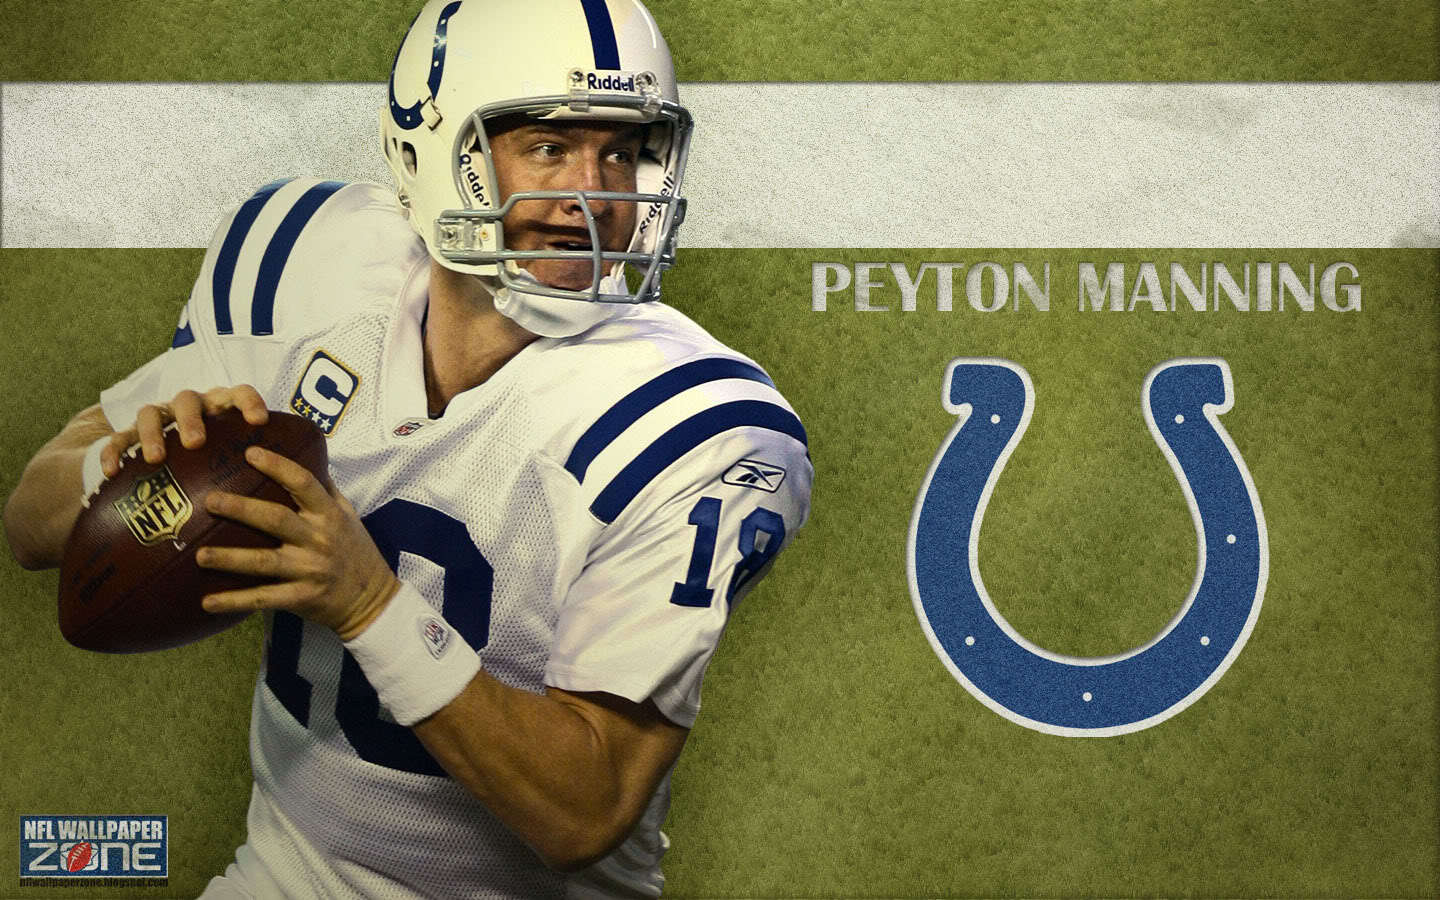 Sports nfl peyton manning HD Wallpaper